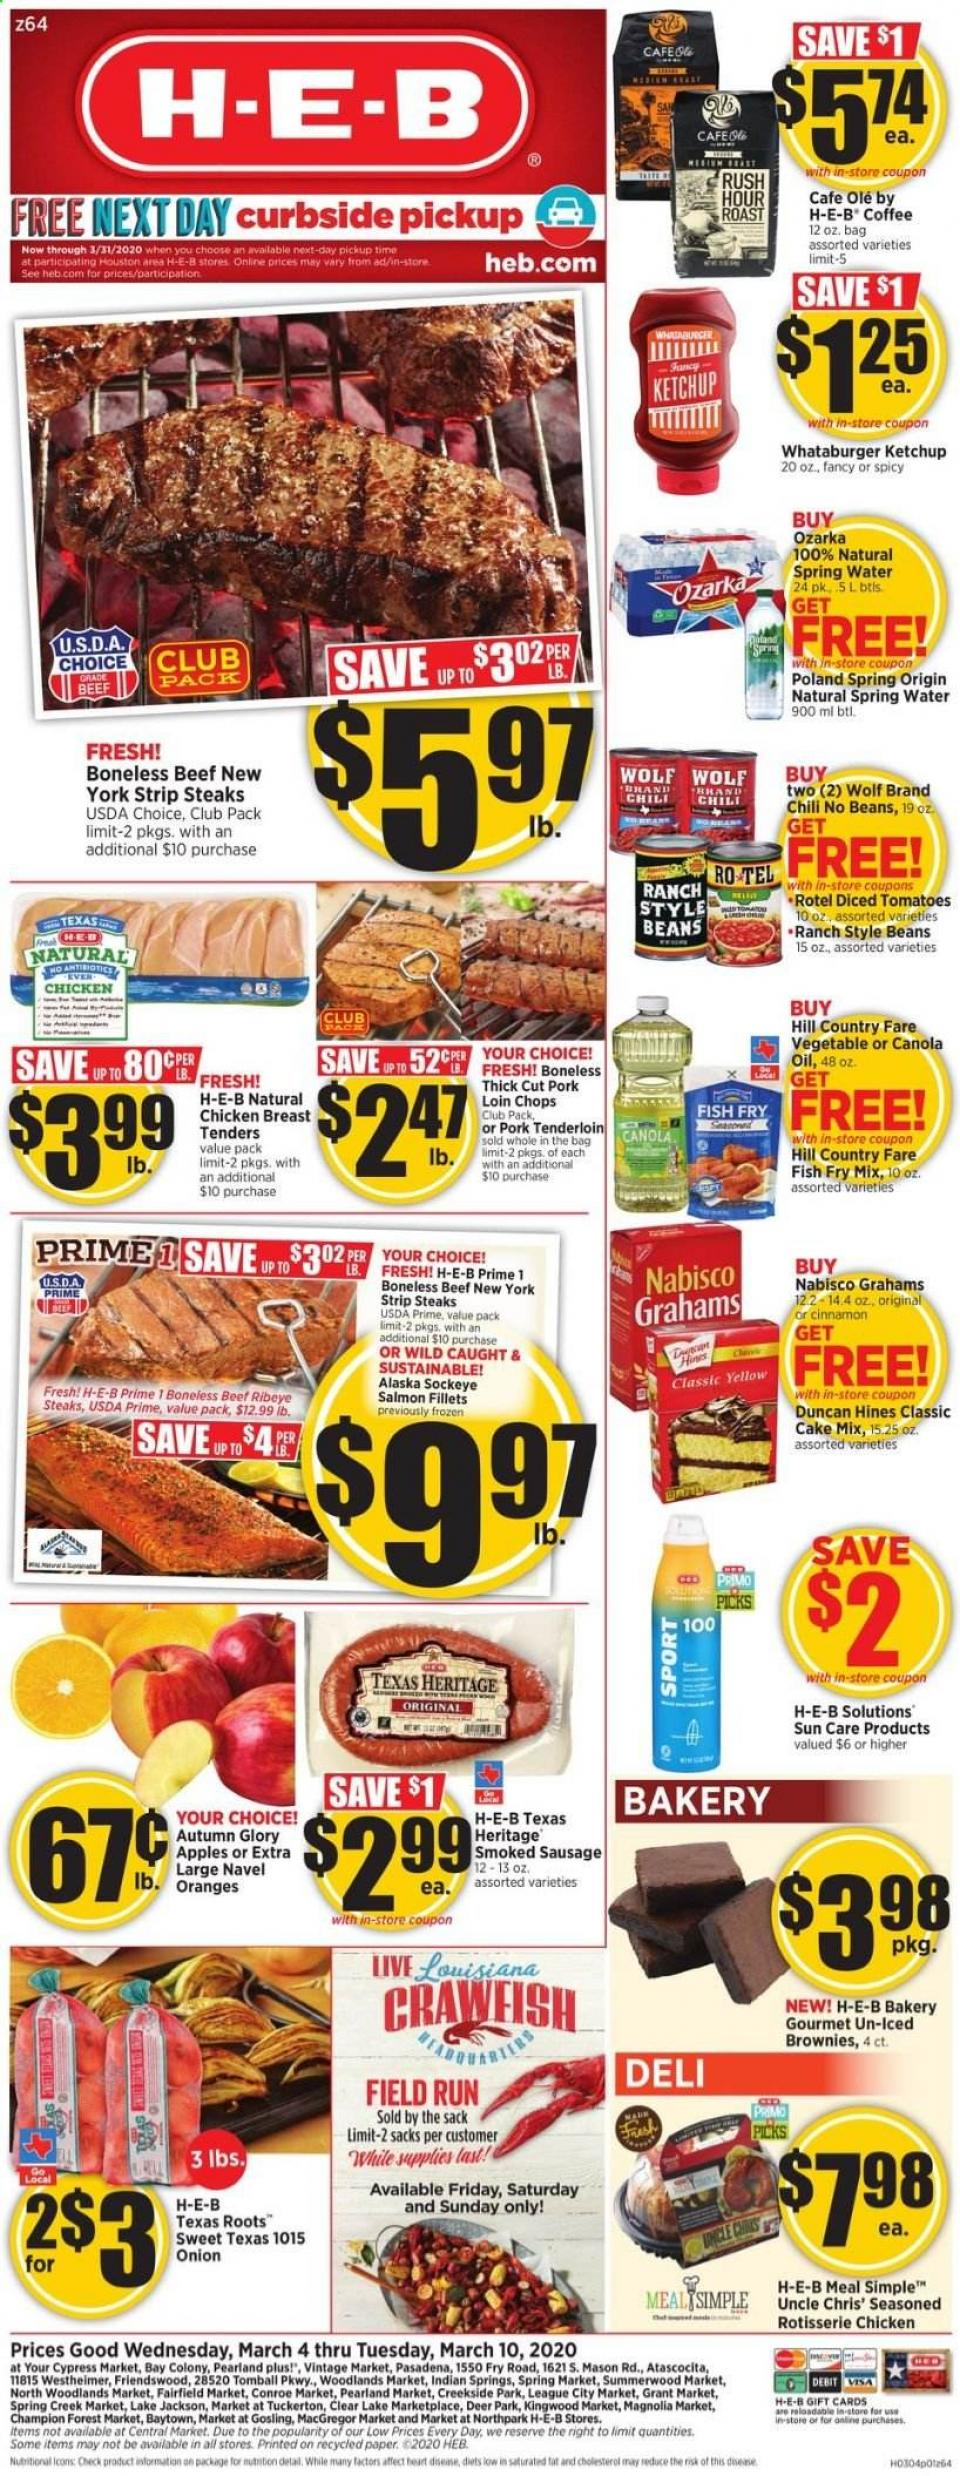 heb march weekly ad valid from mar 4 10 2020